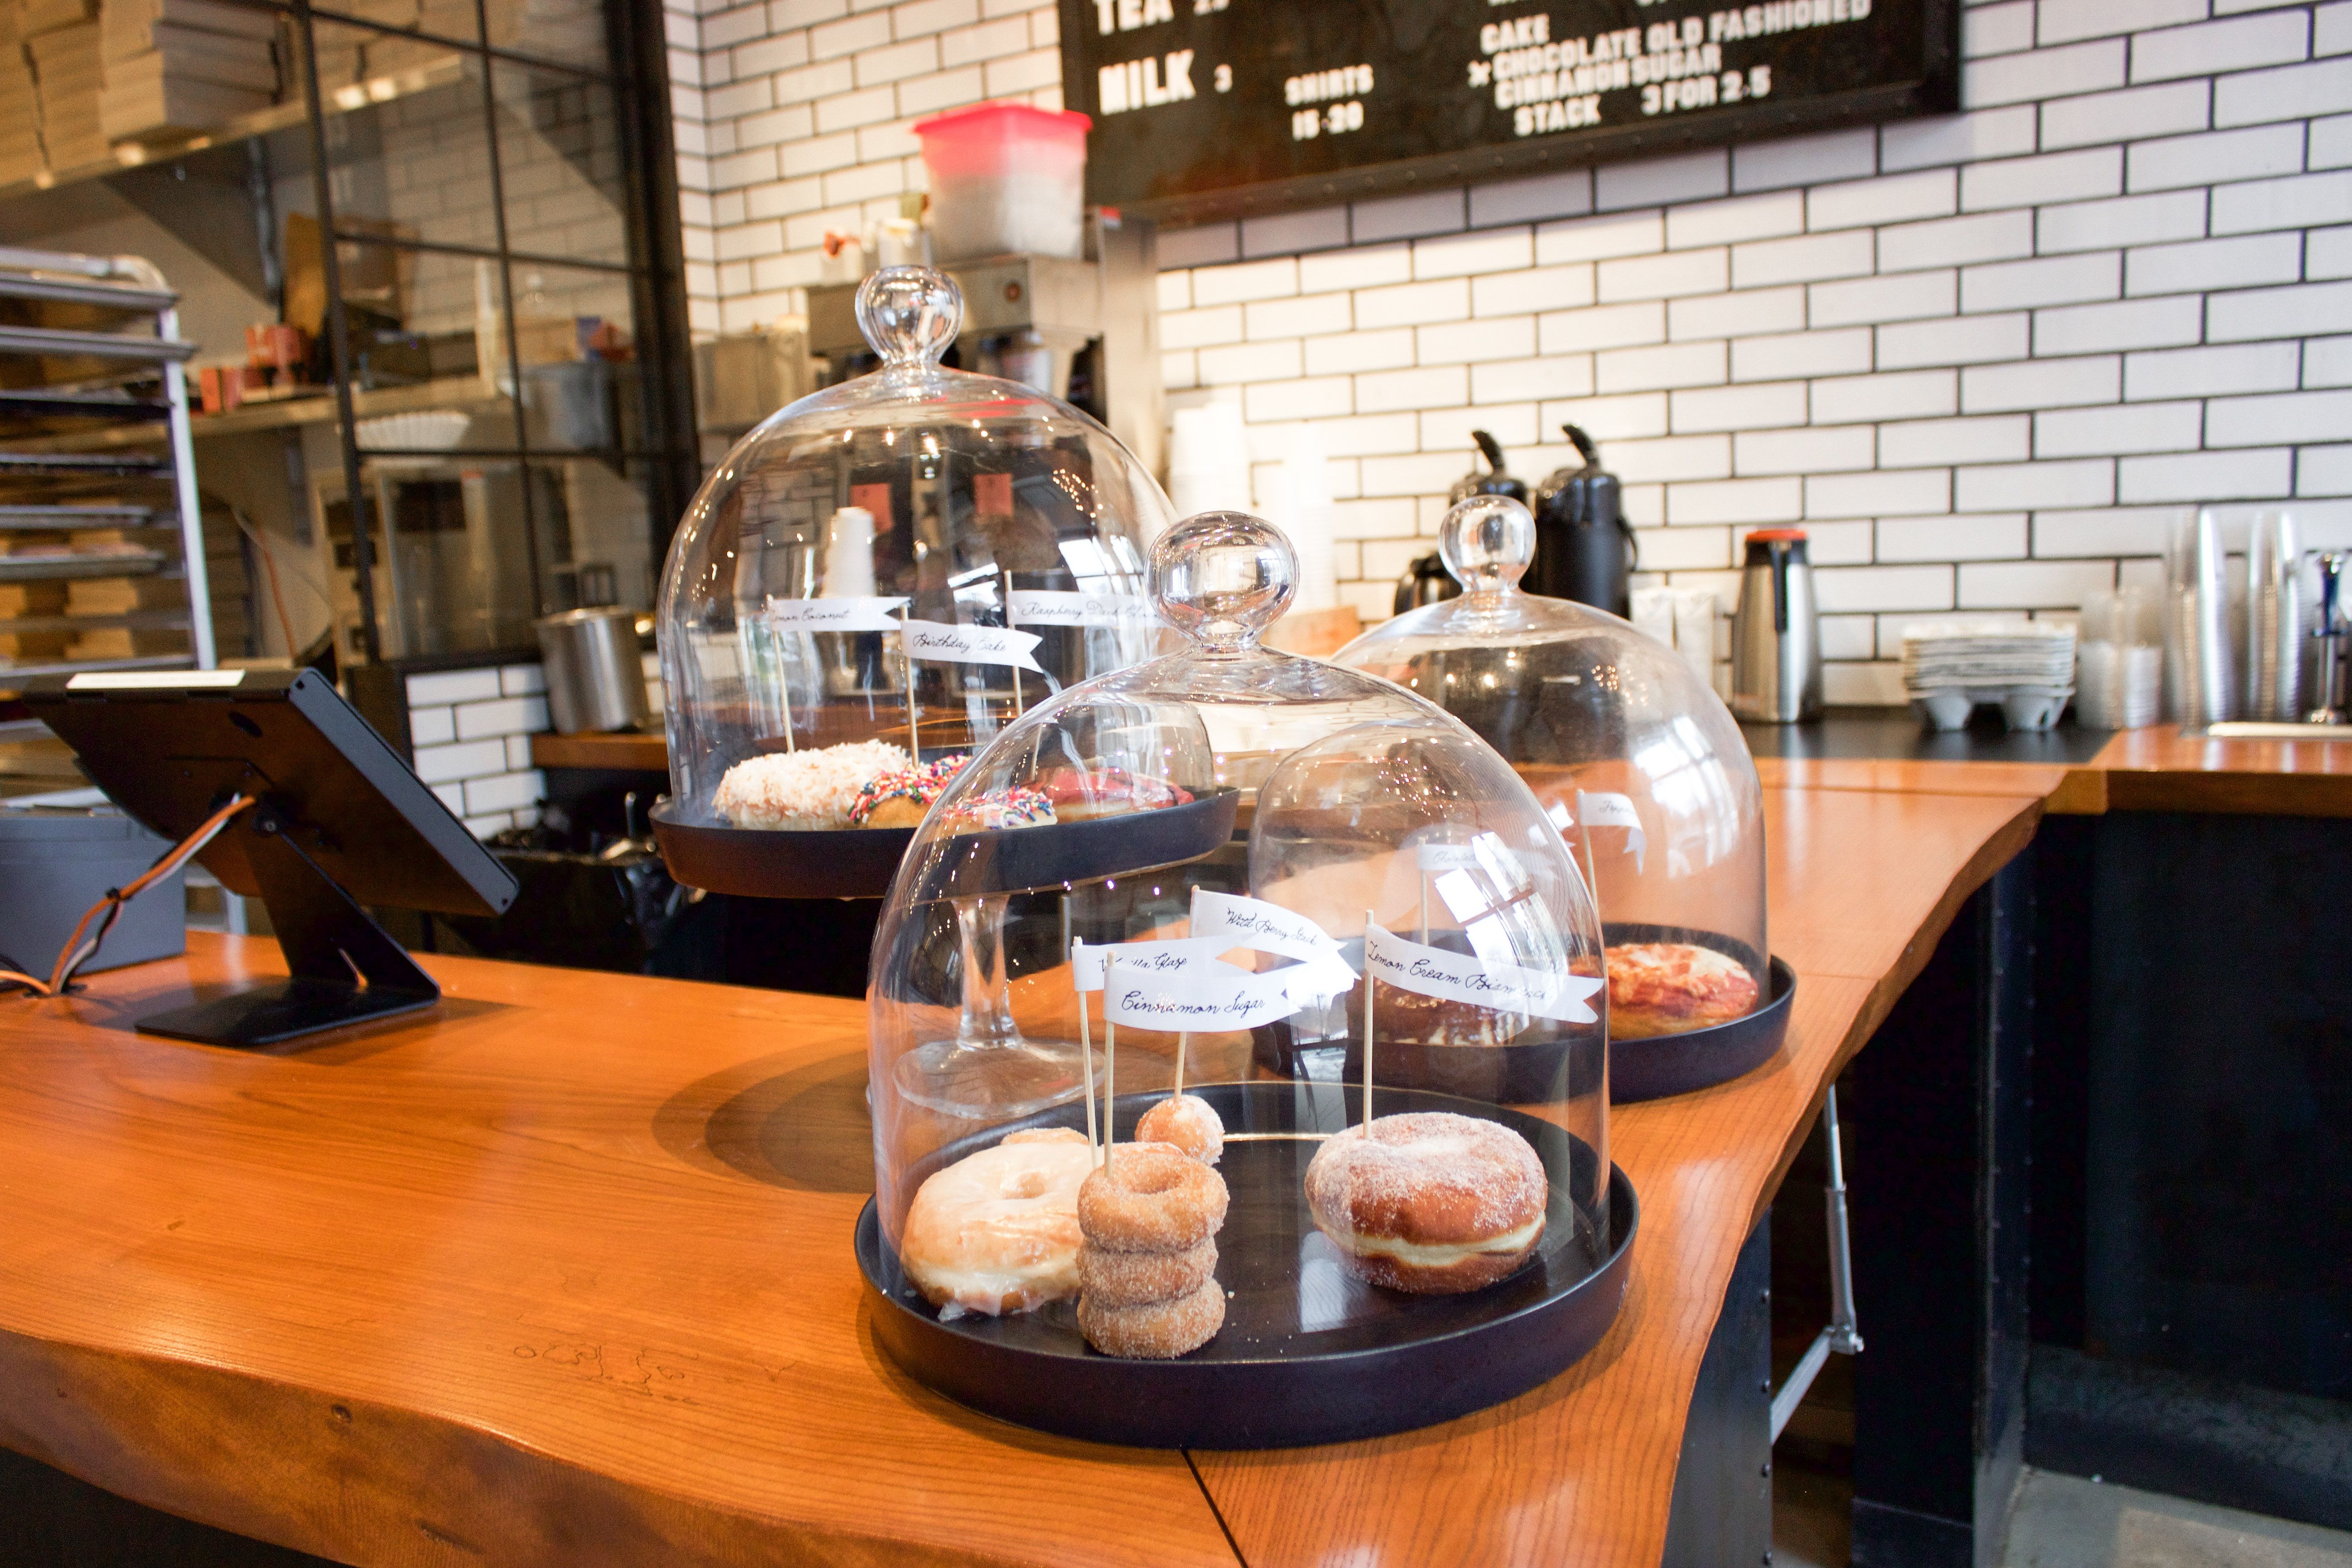 Interior of a doughnut shop. A few doughnuts are visible under a glass dome on the wooden countertop, and white subway tile covers the back wall, where there's a black menu board with white lettering.